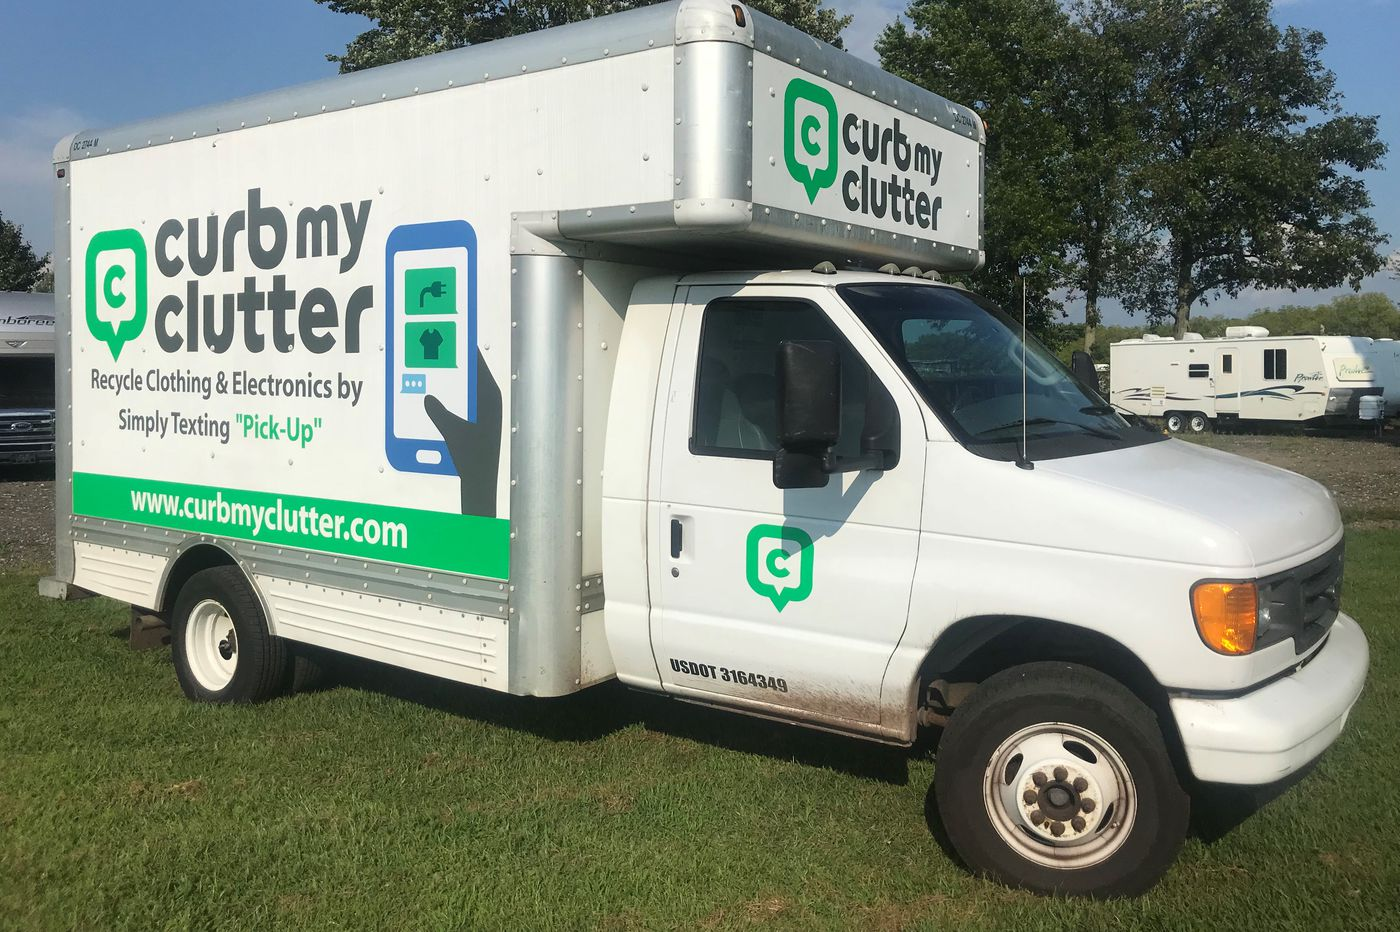 Text 'Pick-Up': Towns are partnering with an app to recycle residents' electronics and clothes